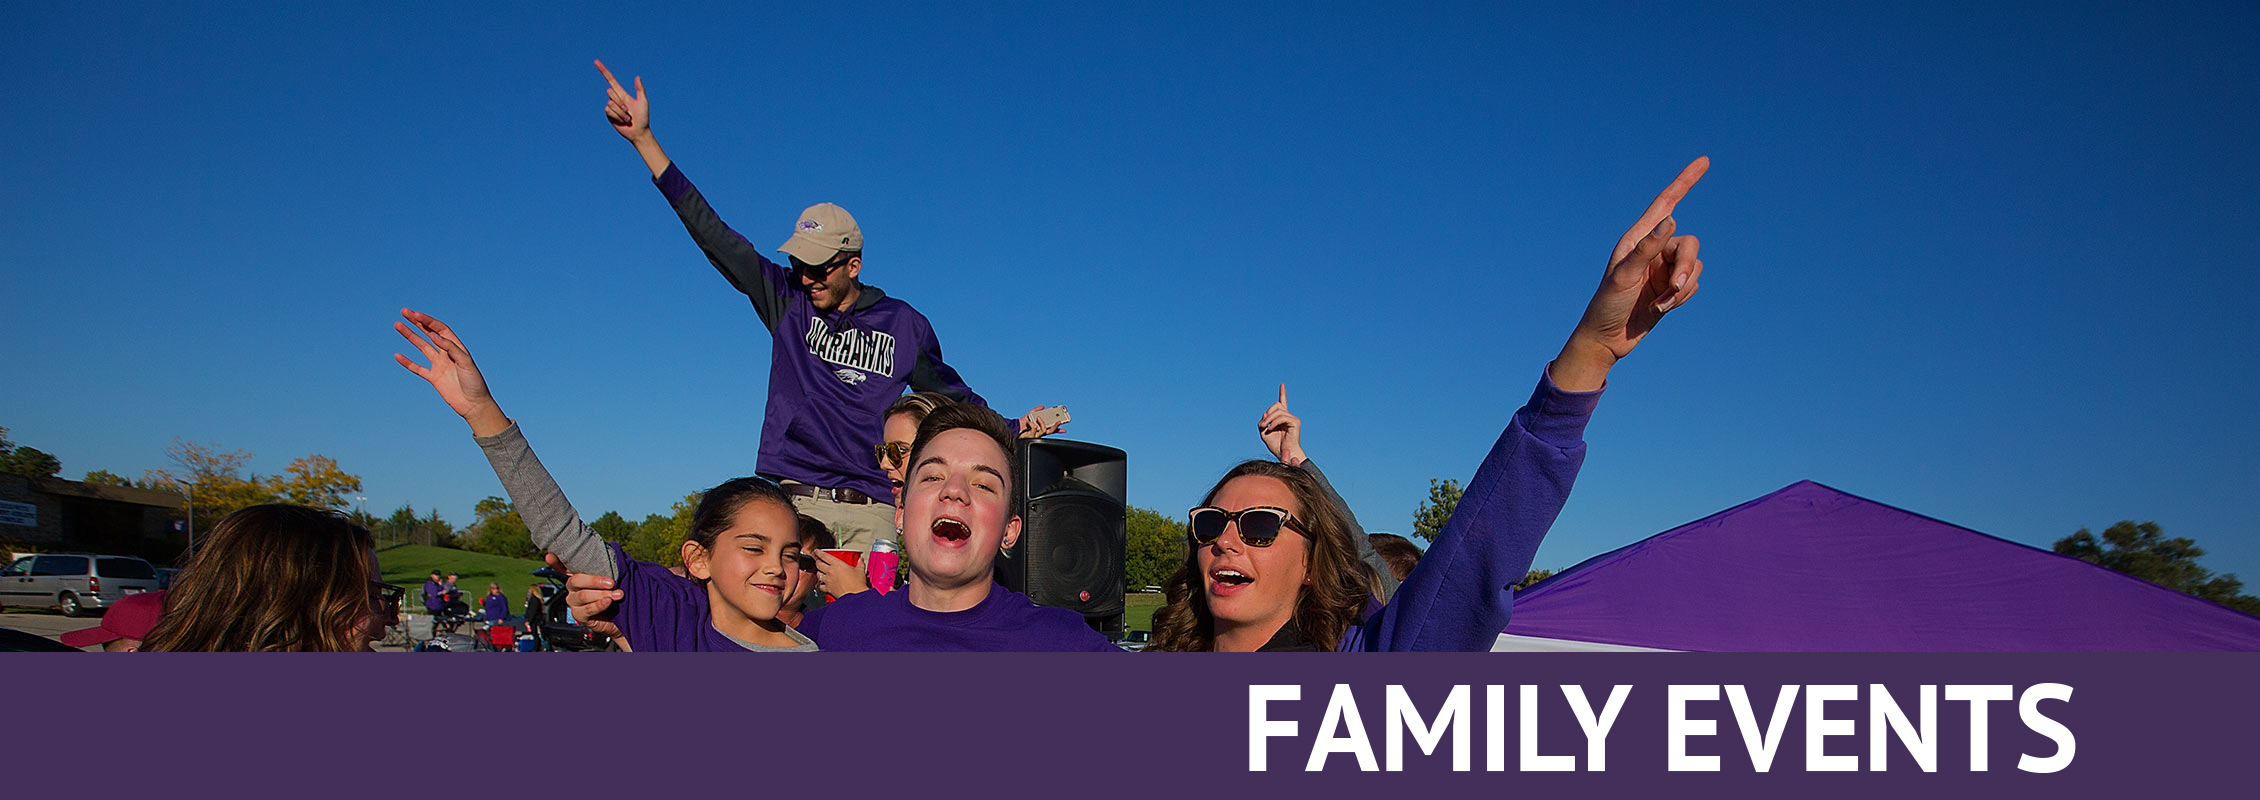 Family Events: A family dressed in purple singing or shouting, arms in the air